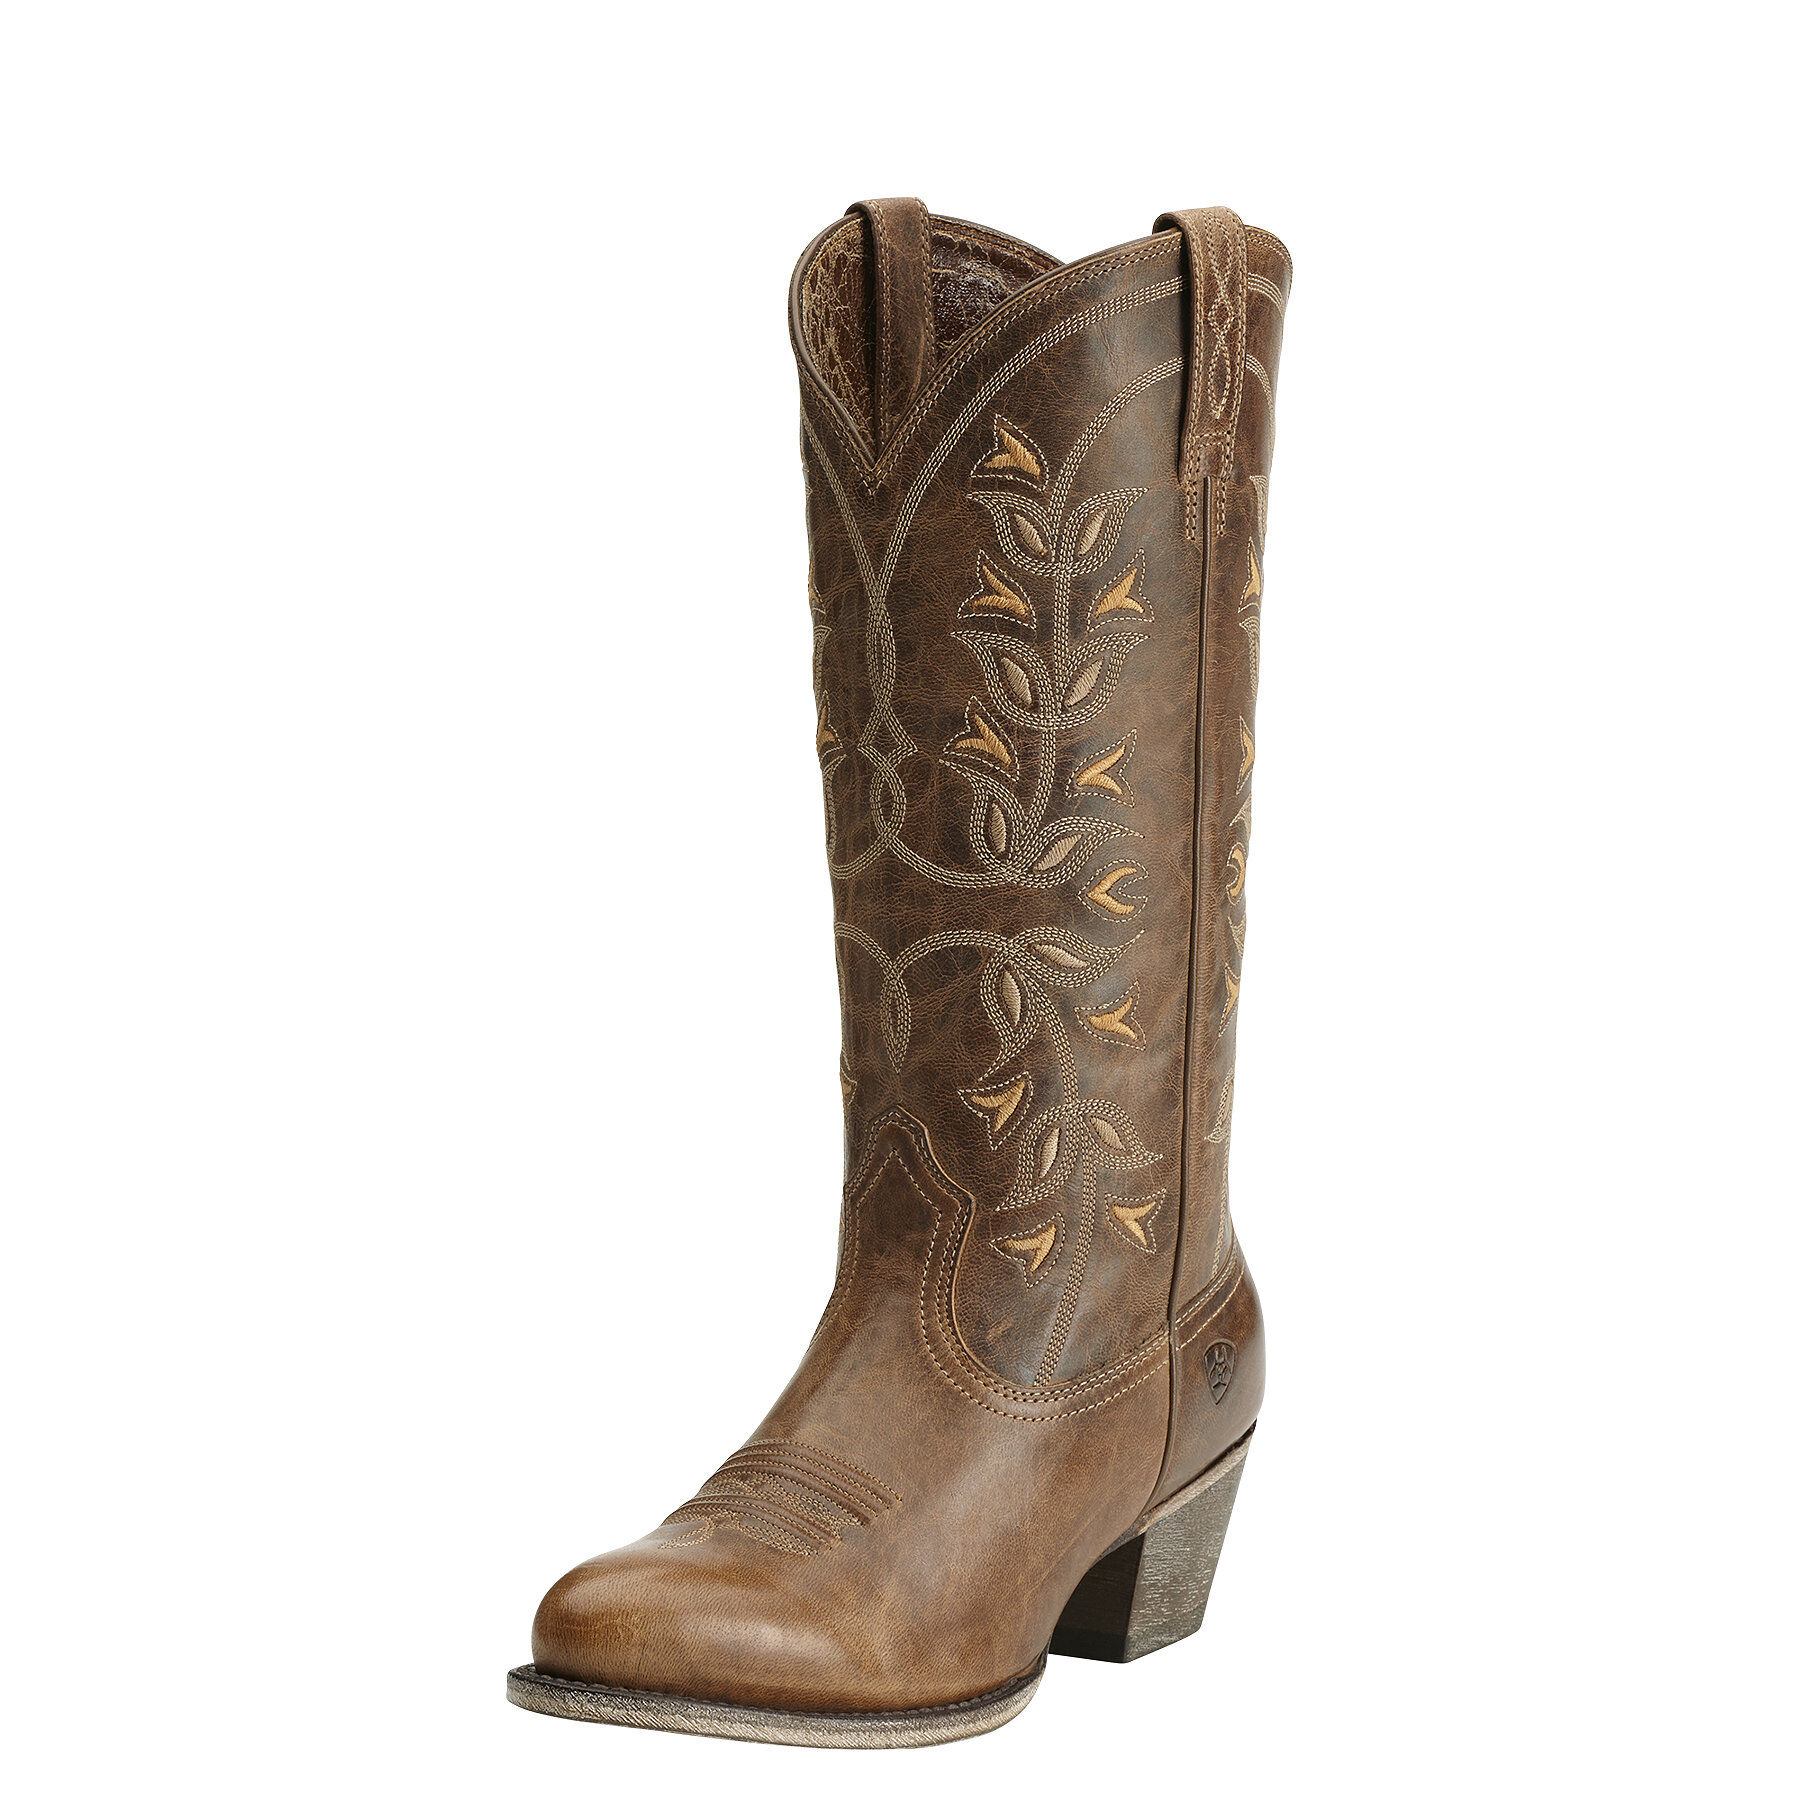 Women's Desert Holly Western Boots in Pearl Leather by Ariat